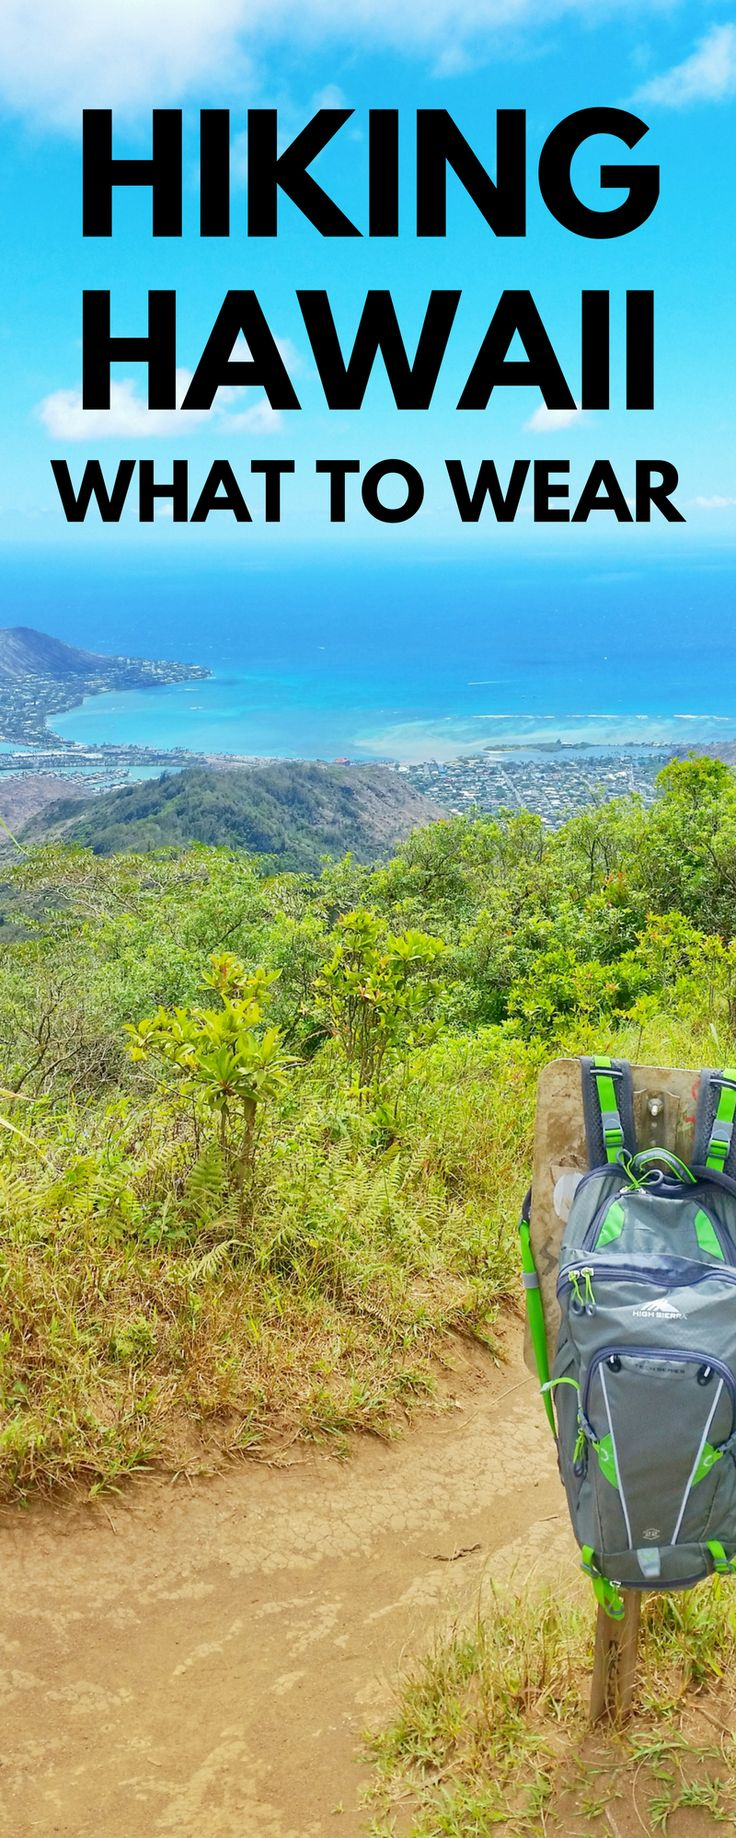 Hiking tips for beginners with what to wear hiking! Hiking gear list for Hawaii, outdoor travel destinations, day hikes on summer road trip. Hiking mountains or easy trails, be prepared! There are essentials when it comes to hiking gear. Things to pack for Hawaii vacation and put on the packing list! Hiking is cheap or free, so it's a perfect budget activity of things to do when you travel, and end your day at the beach, Oahu, Kauai, Maui, Big Island!! #hawaii #oahu #kauai #maui #bigisland